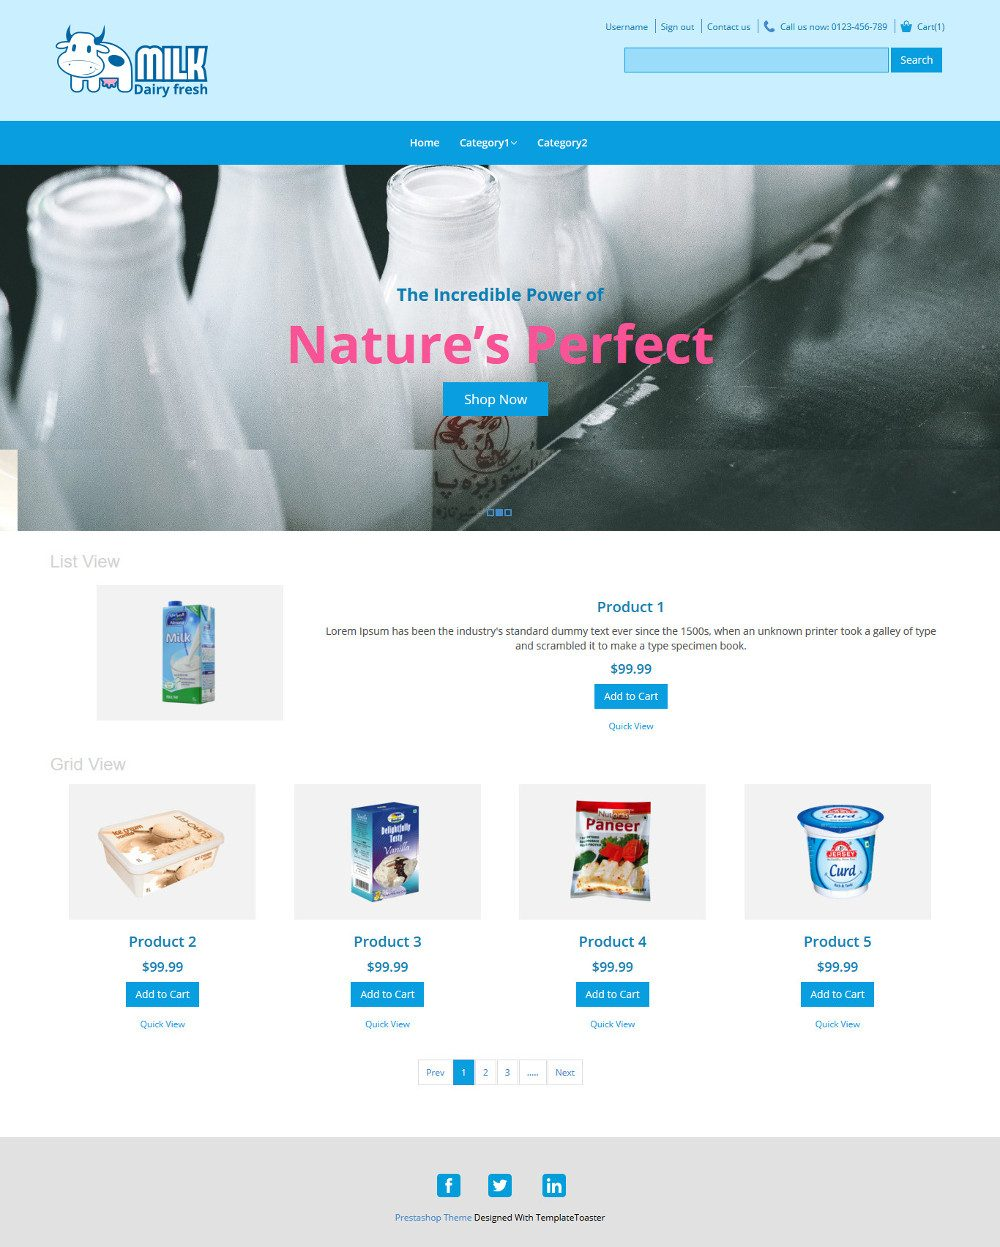 Milk Dairy Fresh Dairy Products PrestaShop Theme